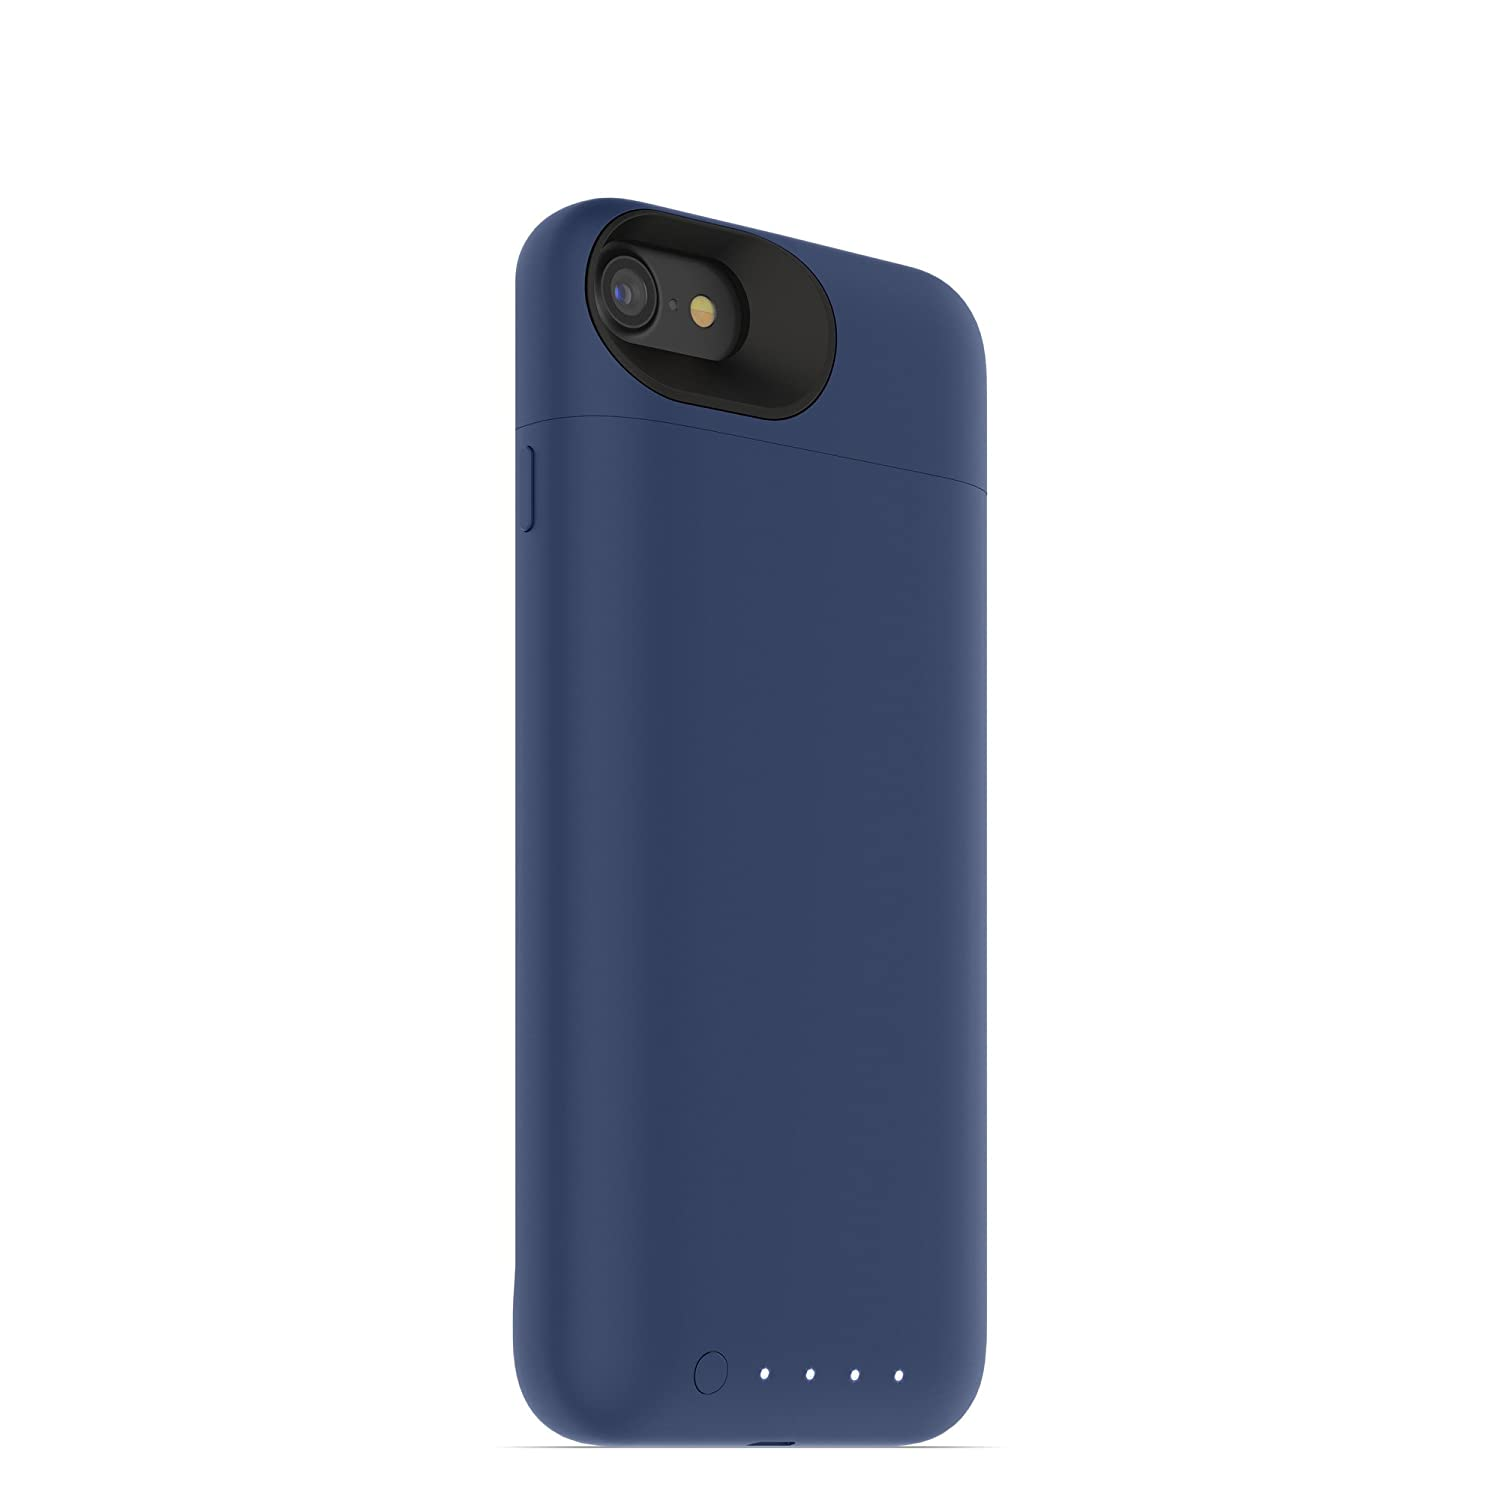 Charge Force Wireless Power Blue Wireless Charging Protective Battery Pack Case for iPhone 8 and iPhone 7 mophie juice pack wireless